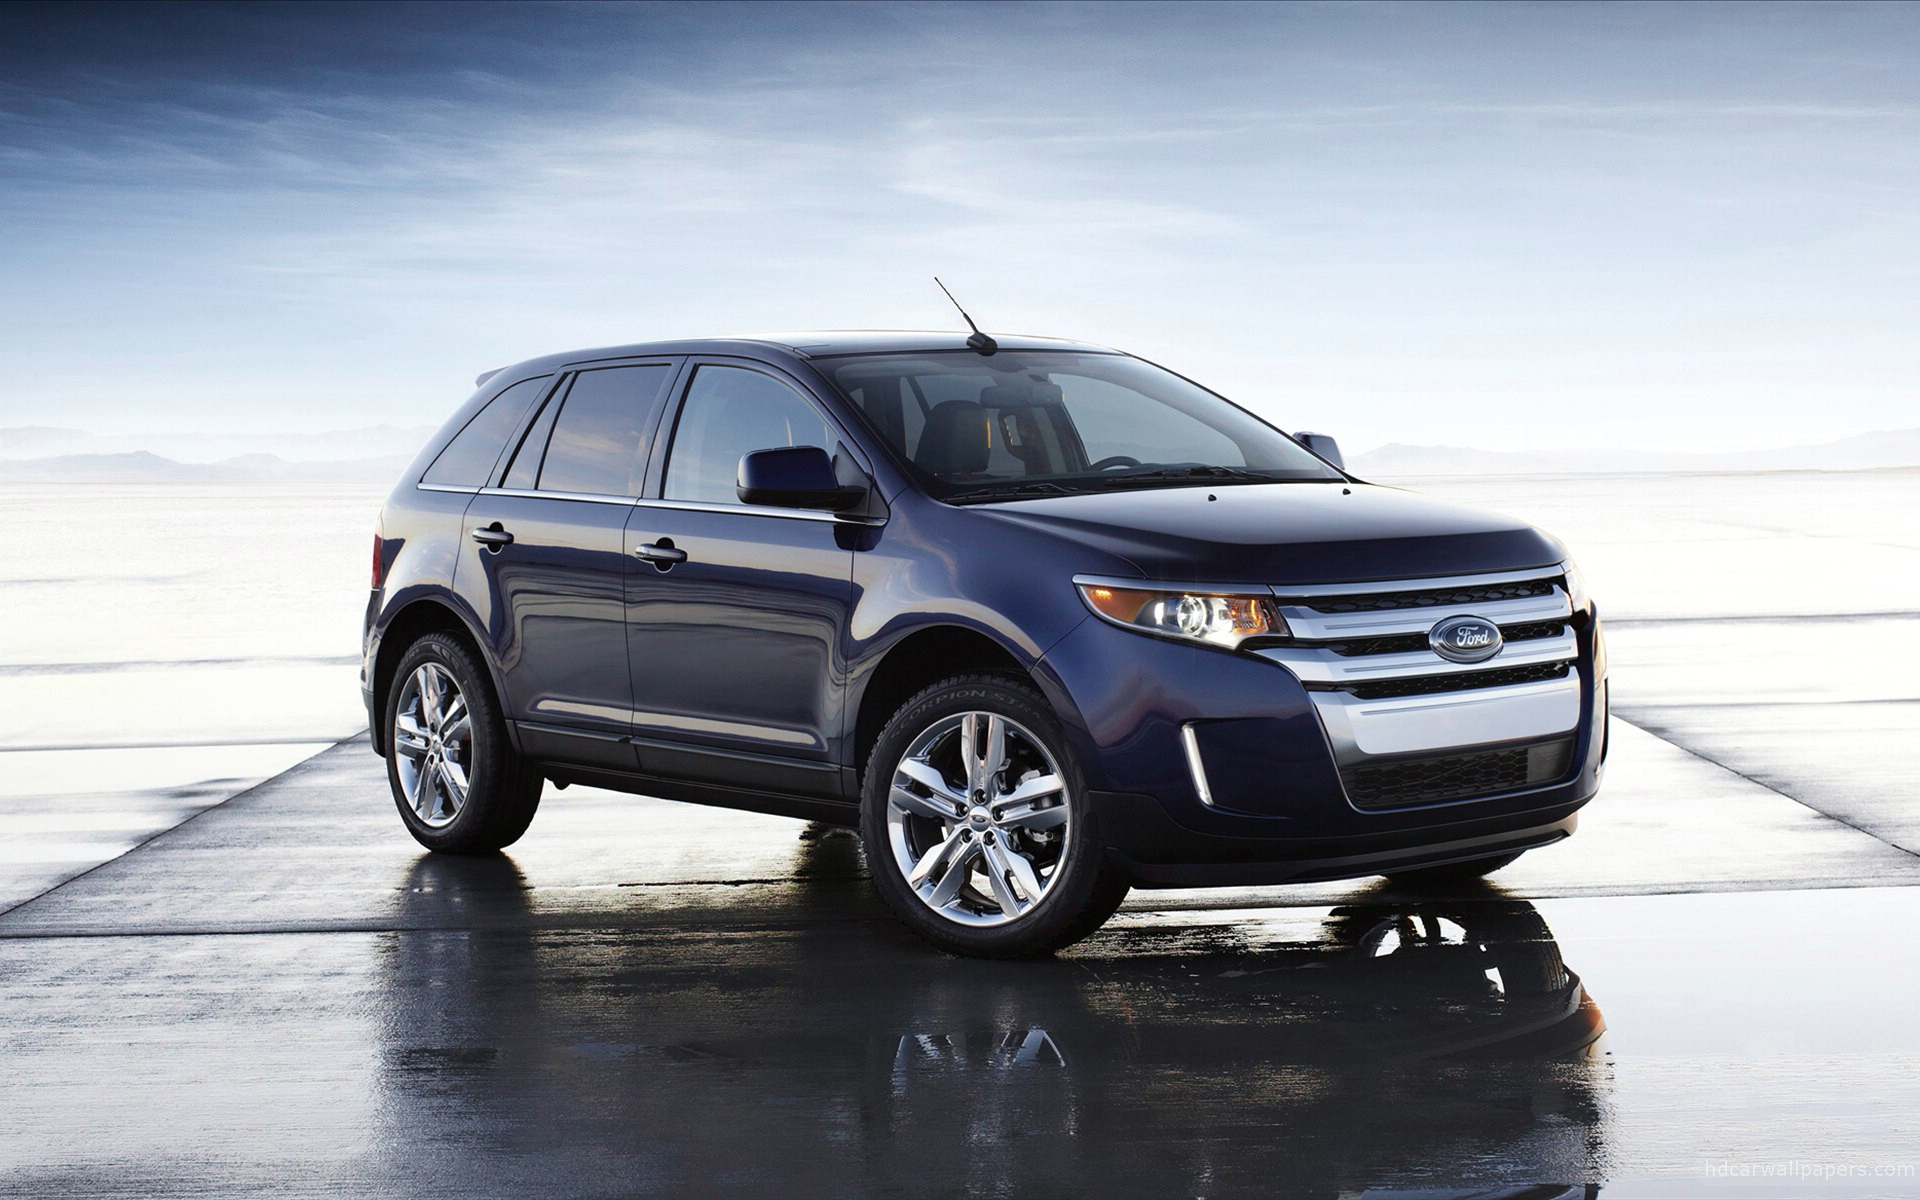 2012 ford edge sport wallpaper hd car wallpapers id 2162. Black Bedroom Furniture Sets. Home Design Ideas